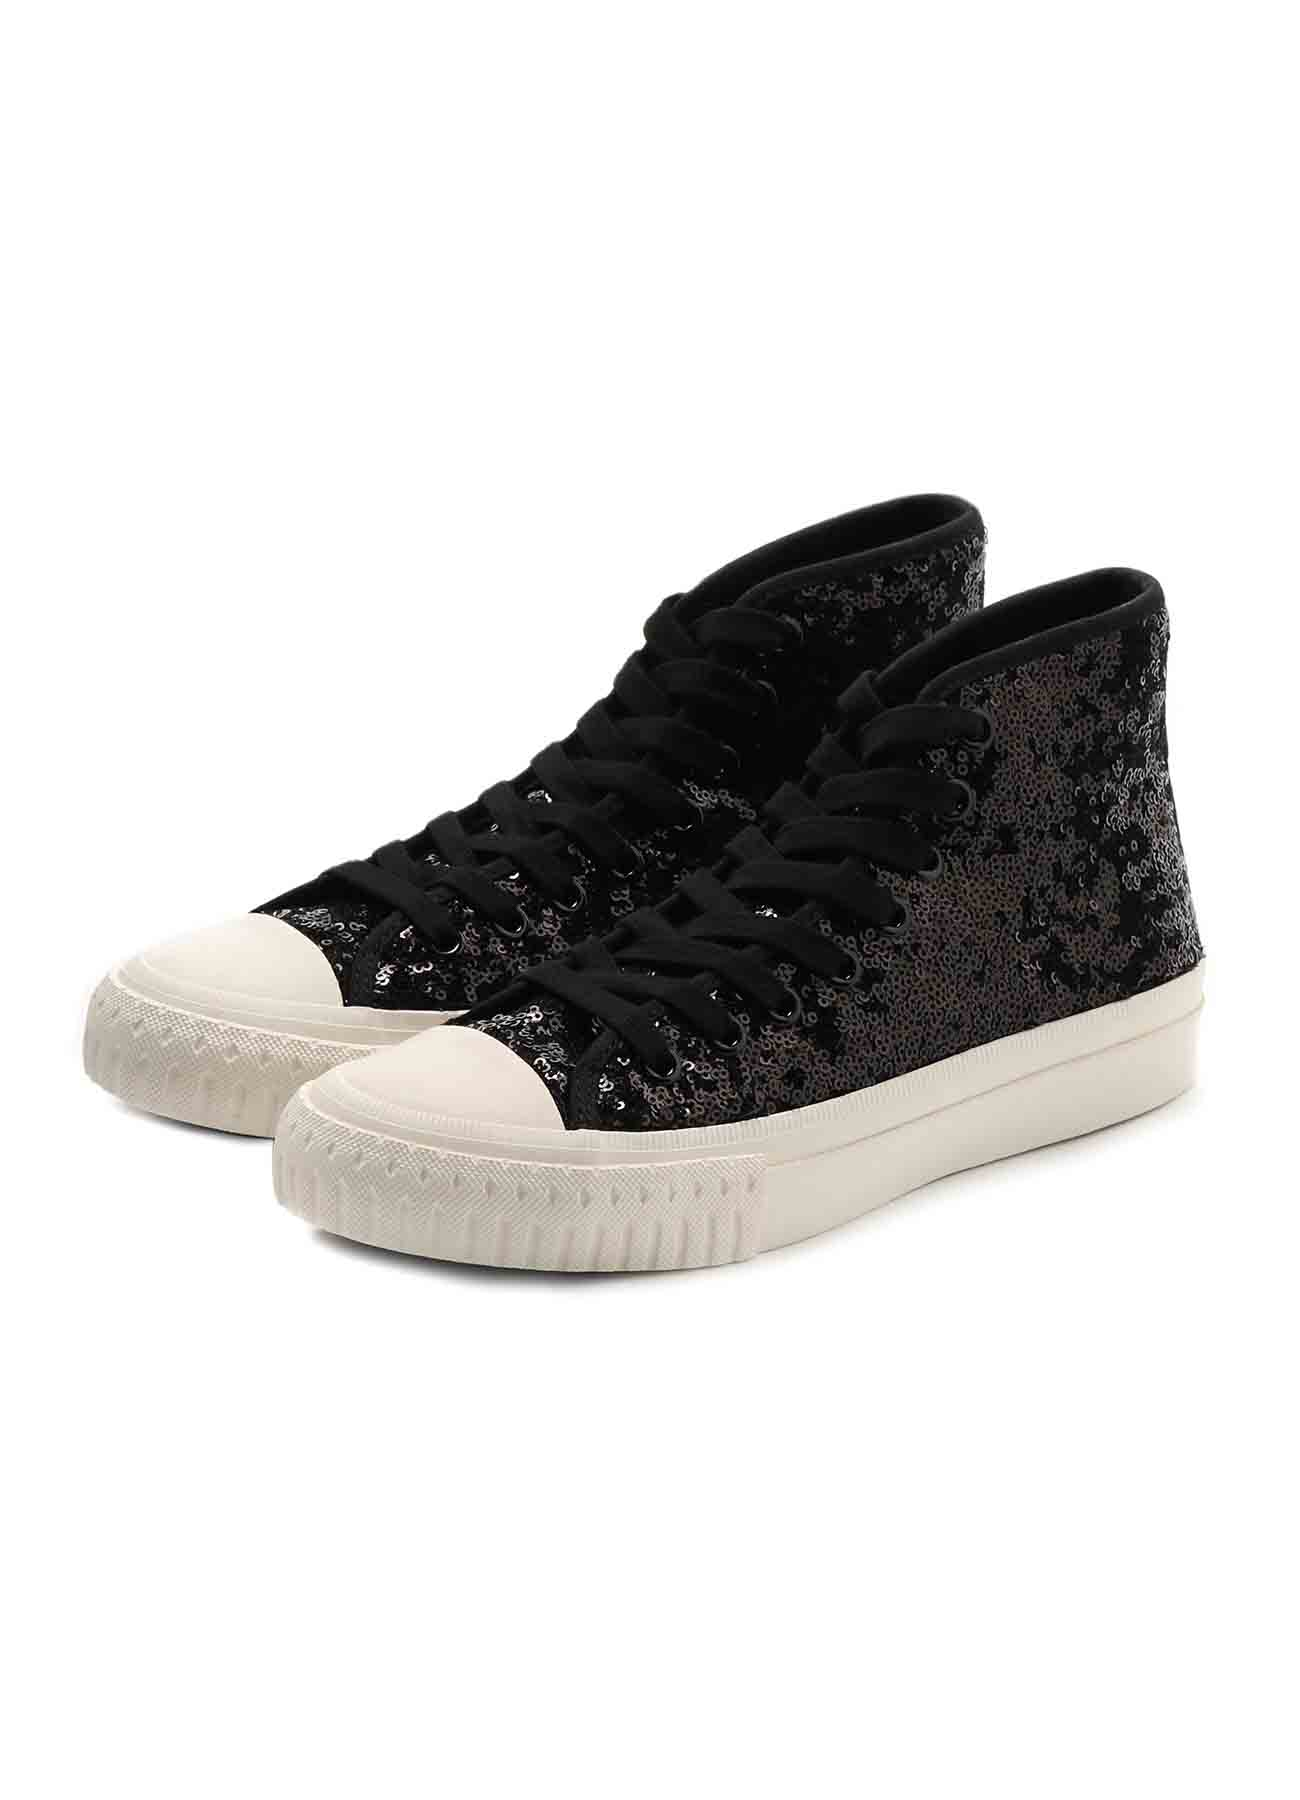 P SPANGLE HIGHTOP SNEAKER